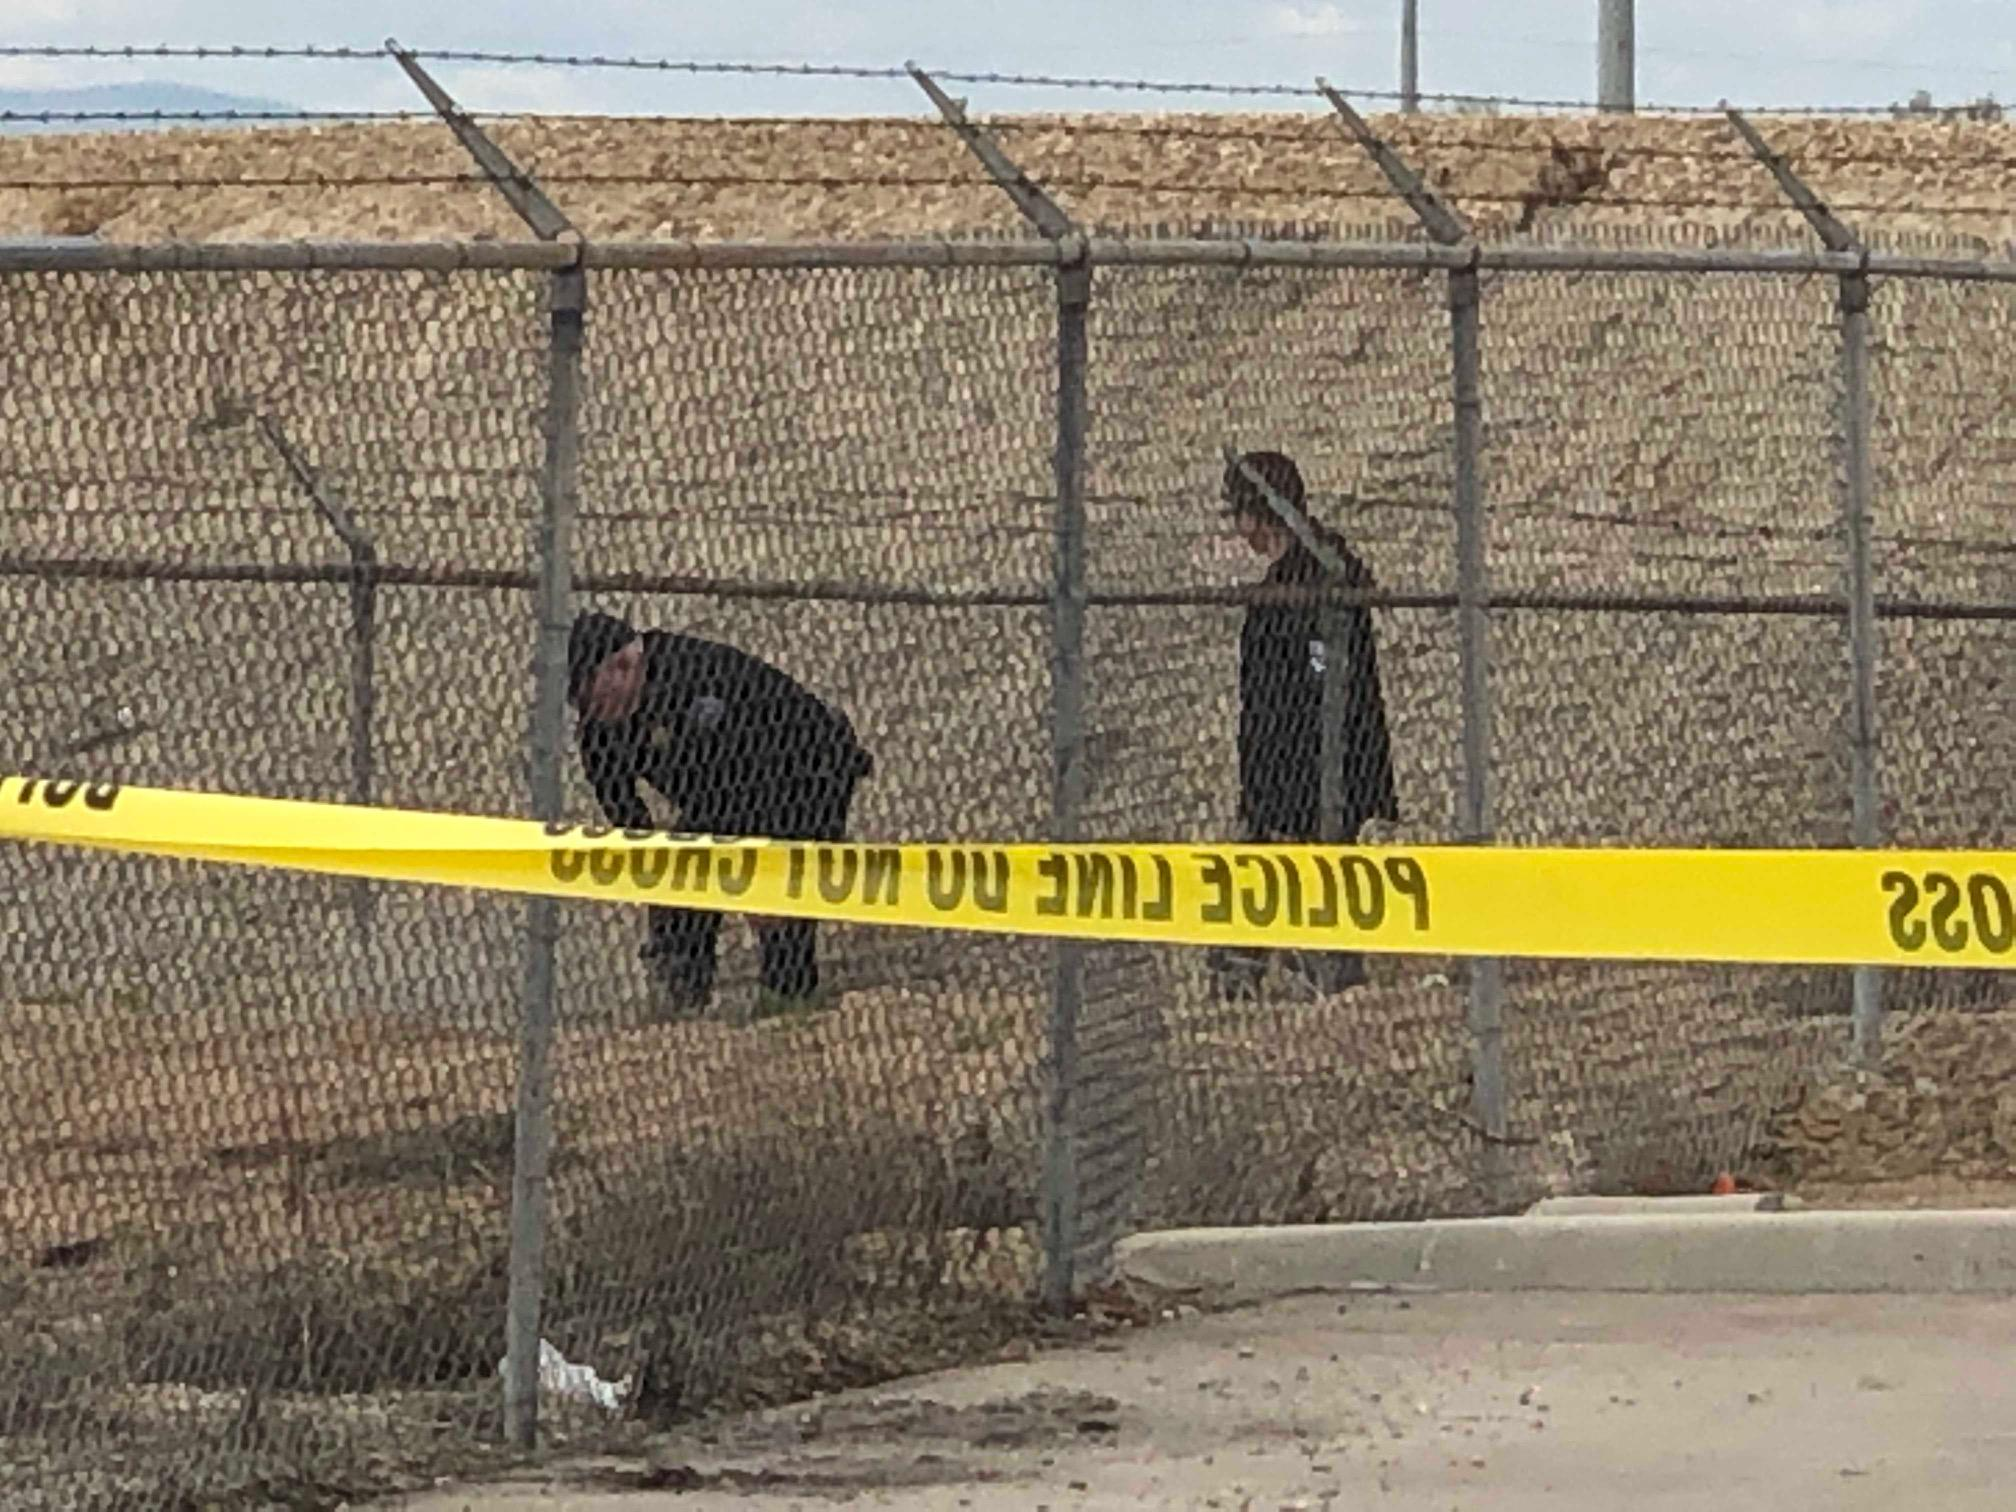 Body found near Sugar Beet factory in Nampa. (CBS 2 Staff Photo)